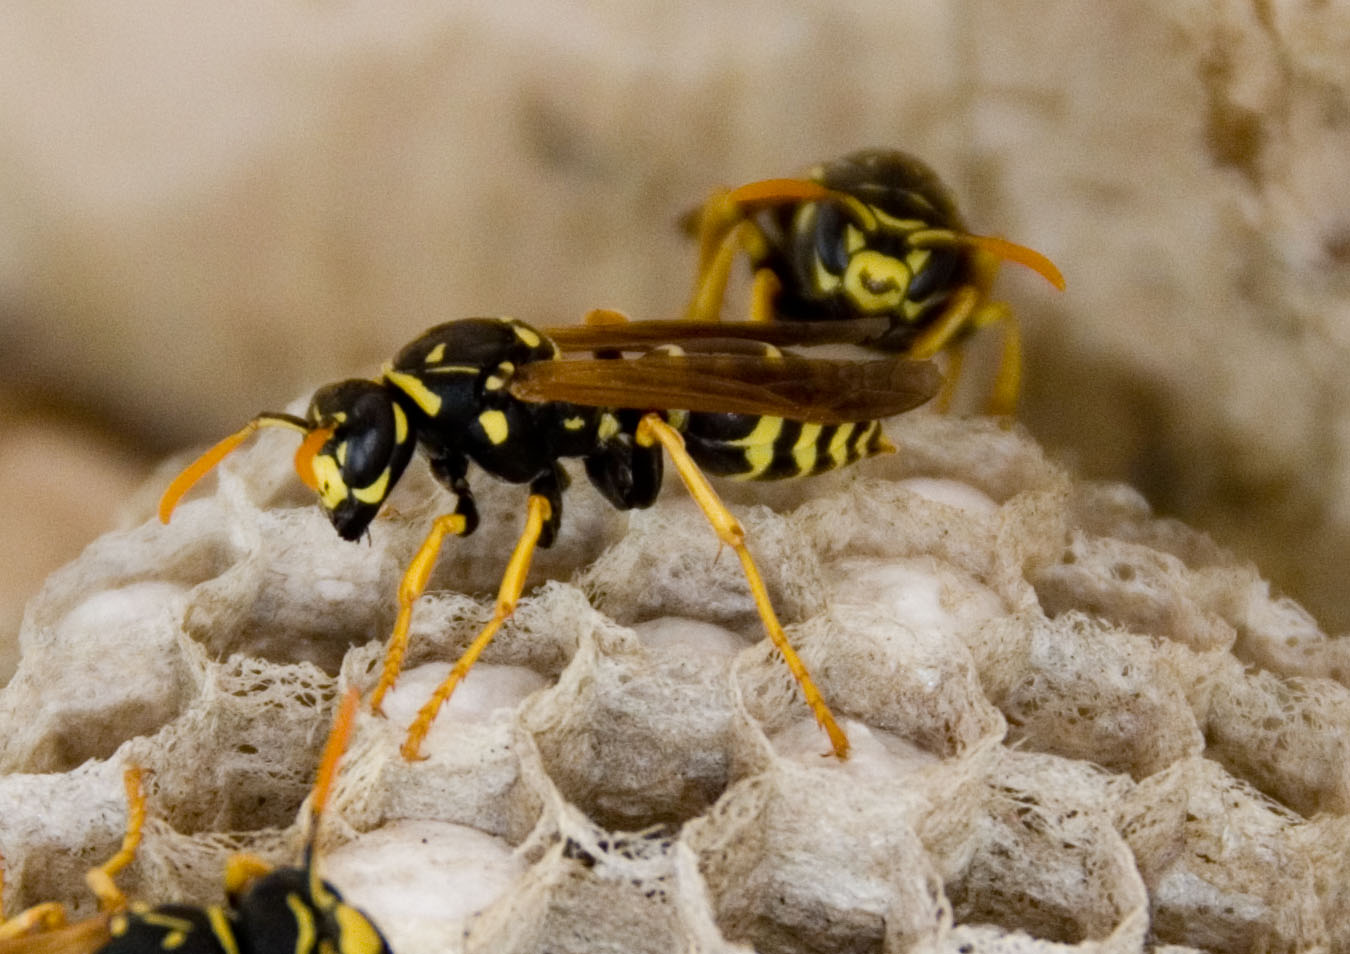 While Wasps may be a nuisance to a summertime picnic, they do have their uses.  (Kelly Klaas, Creative Commons)